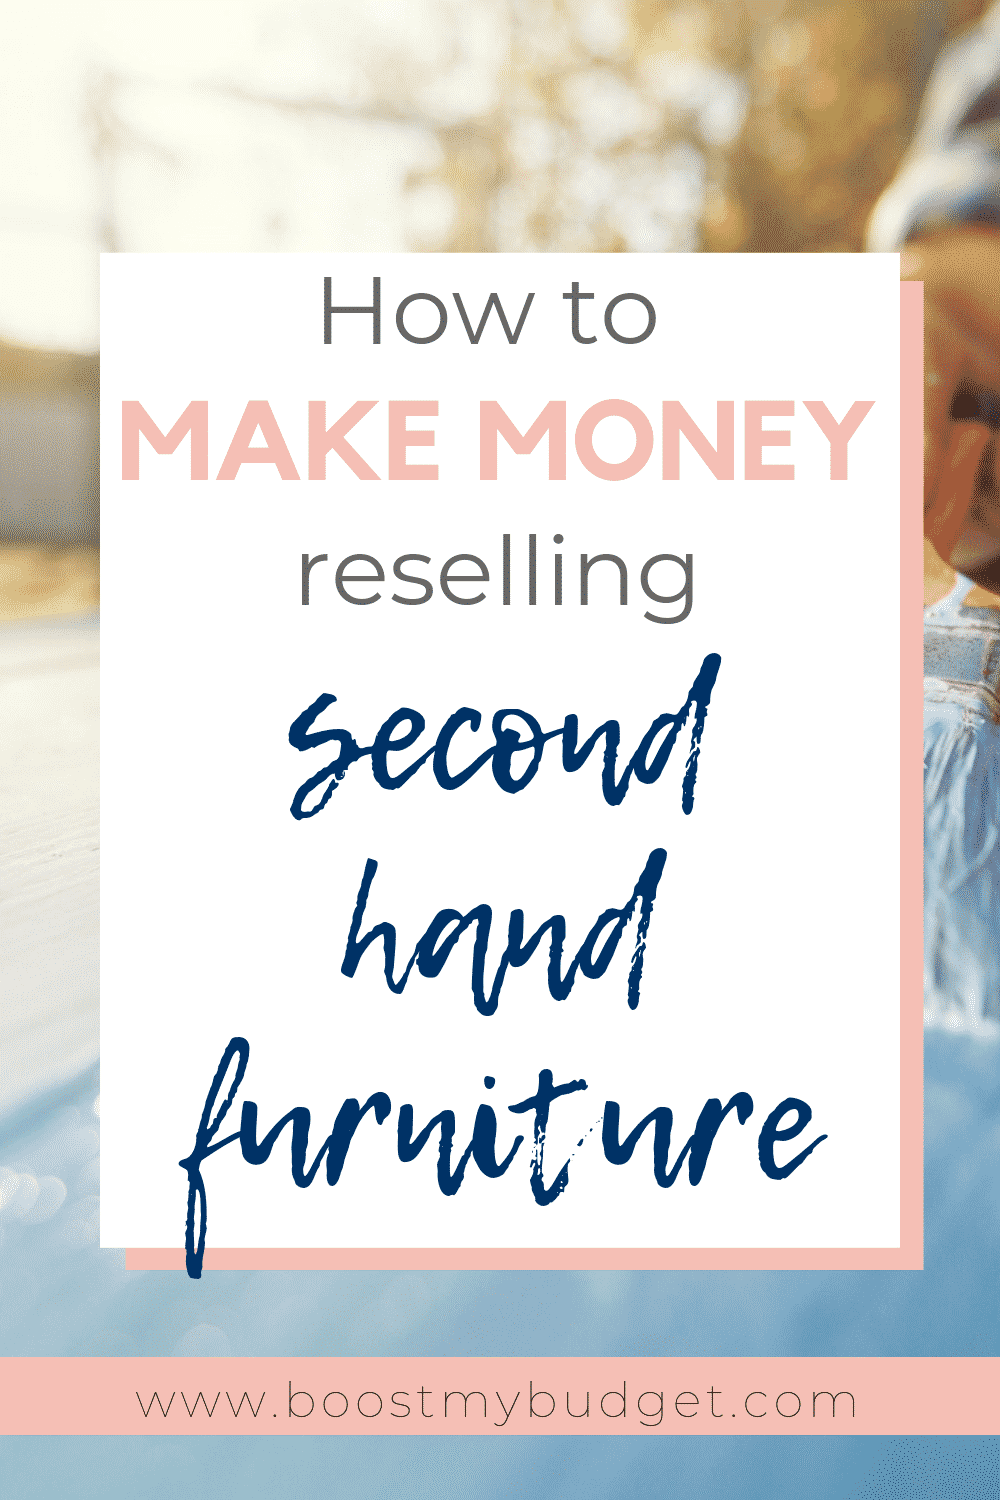 Learn how to make money by flipping and reselling second hand furniture! This is a fun way to earn extra cash if you're a creative type and enjoy decorating and restoring furniture